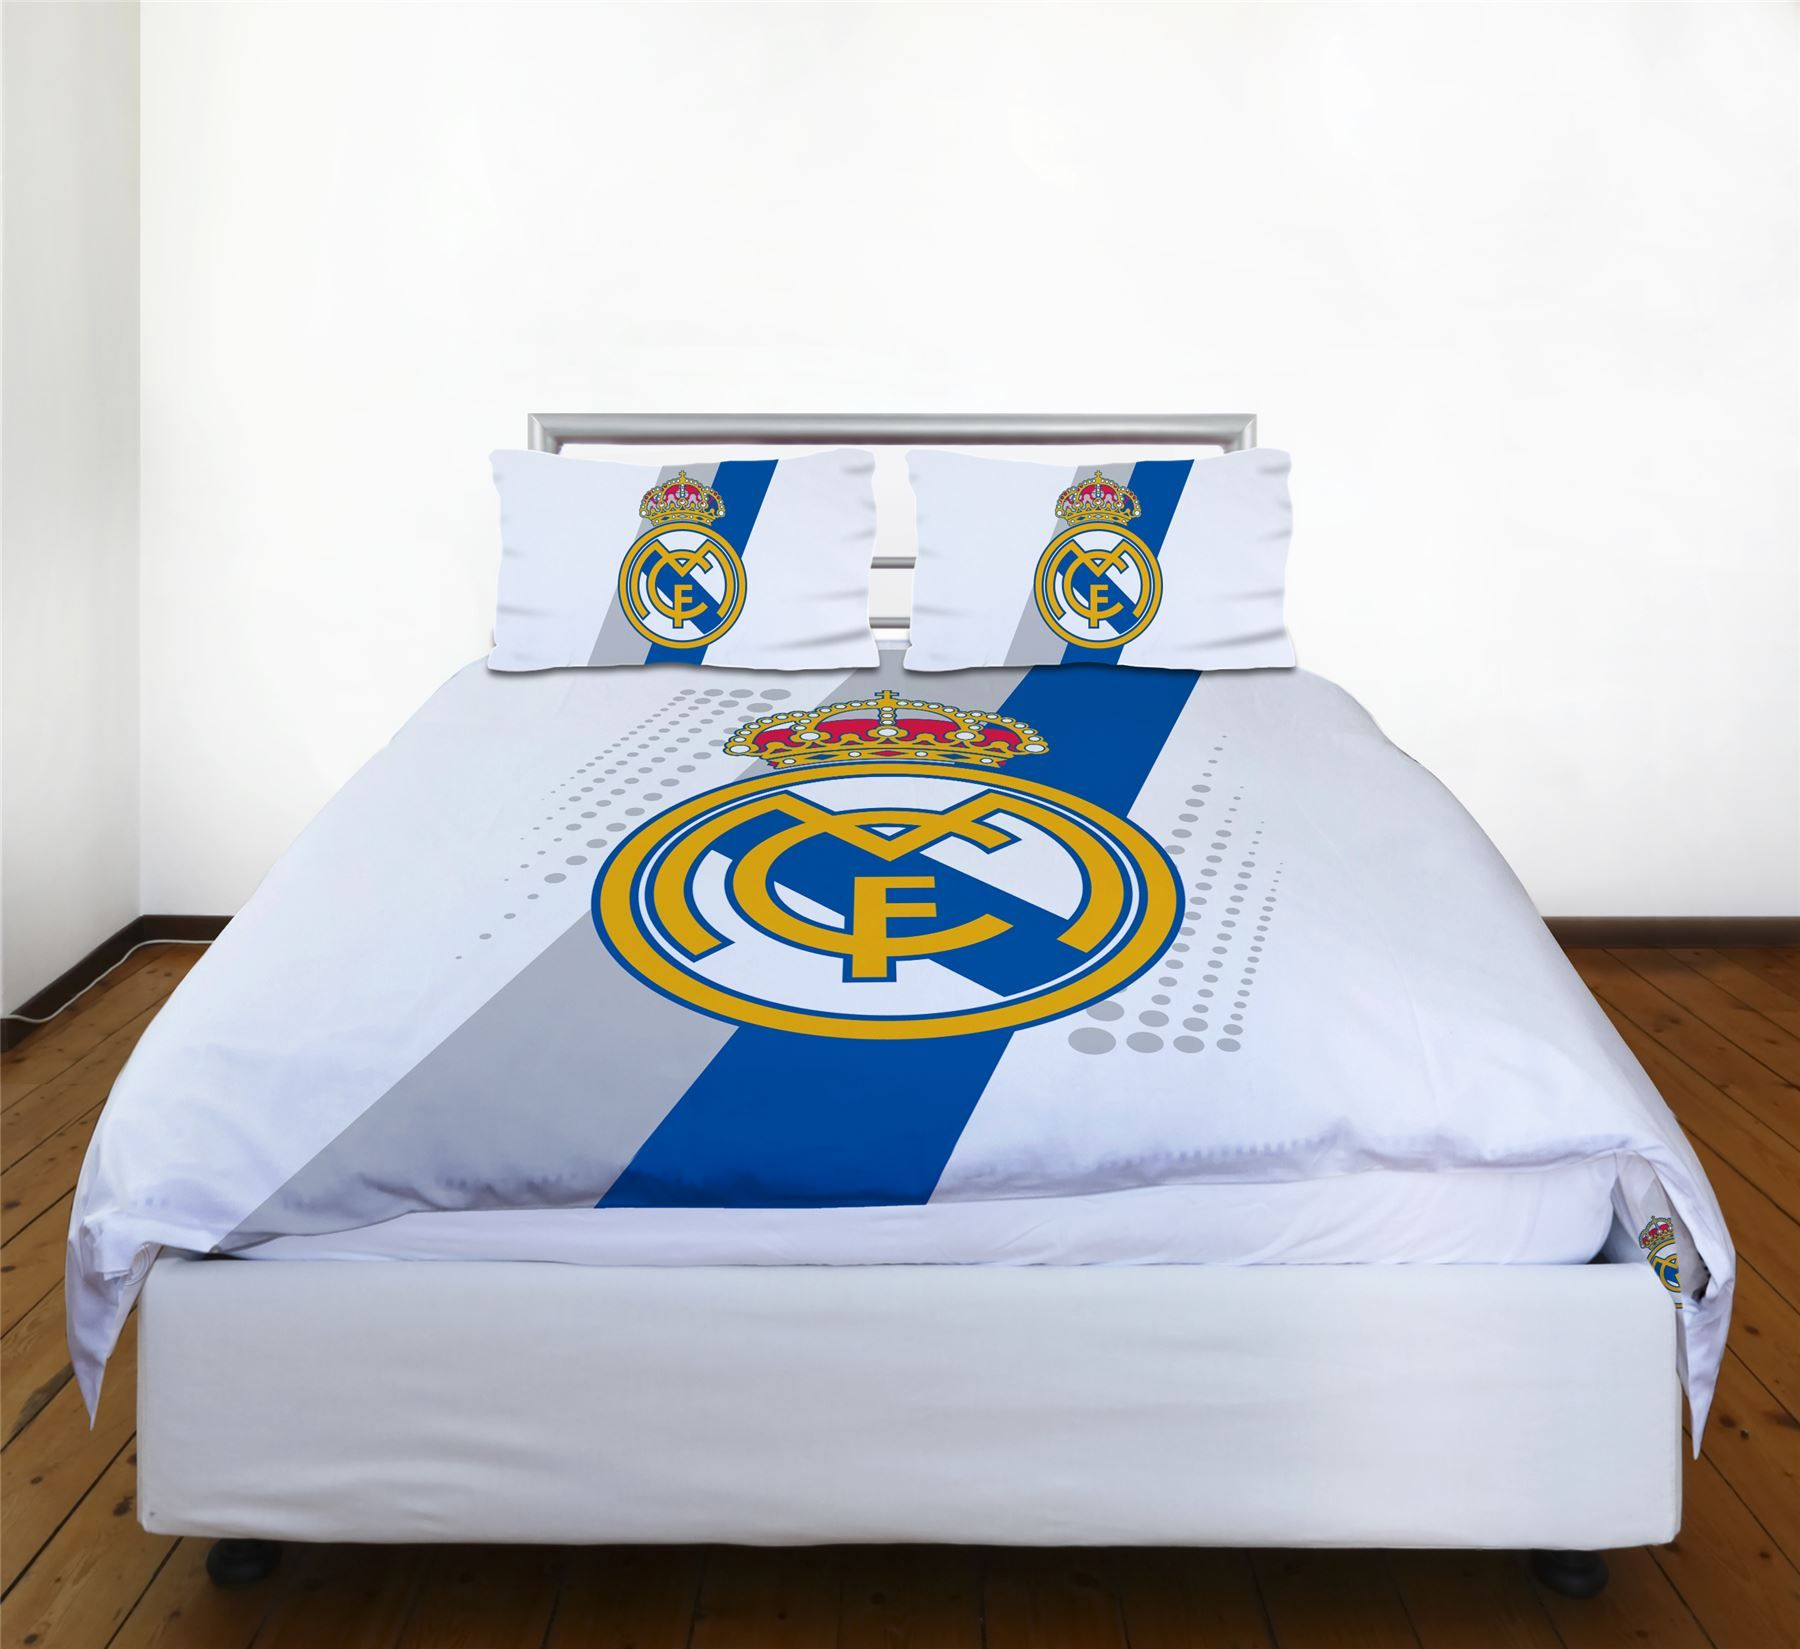 Real madrid bedding and bedroom accessories football boys official new free p p ebay - Real madrid decorations ...